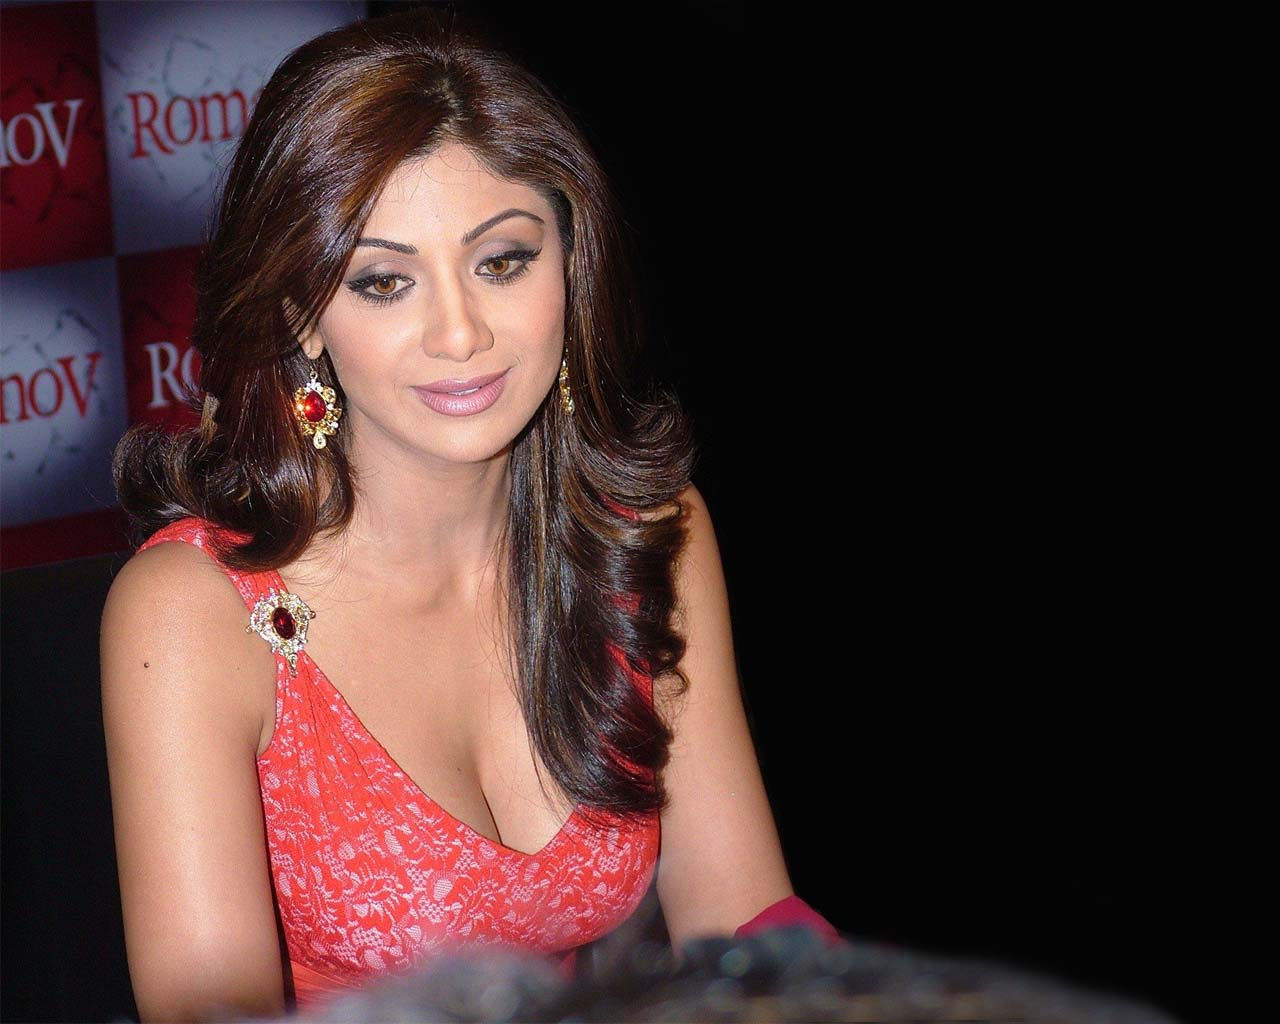 Sexy image of shilpa shetty